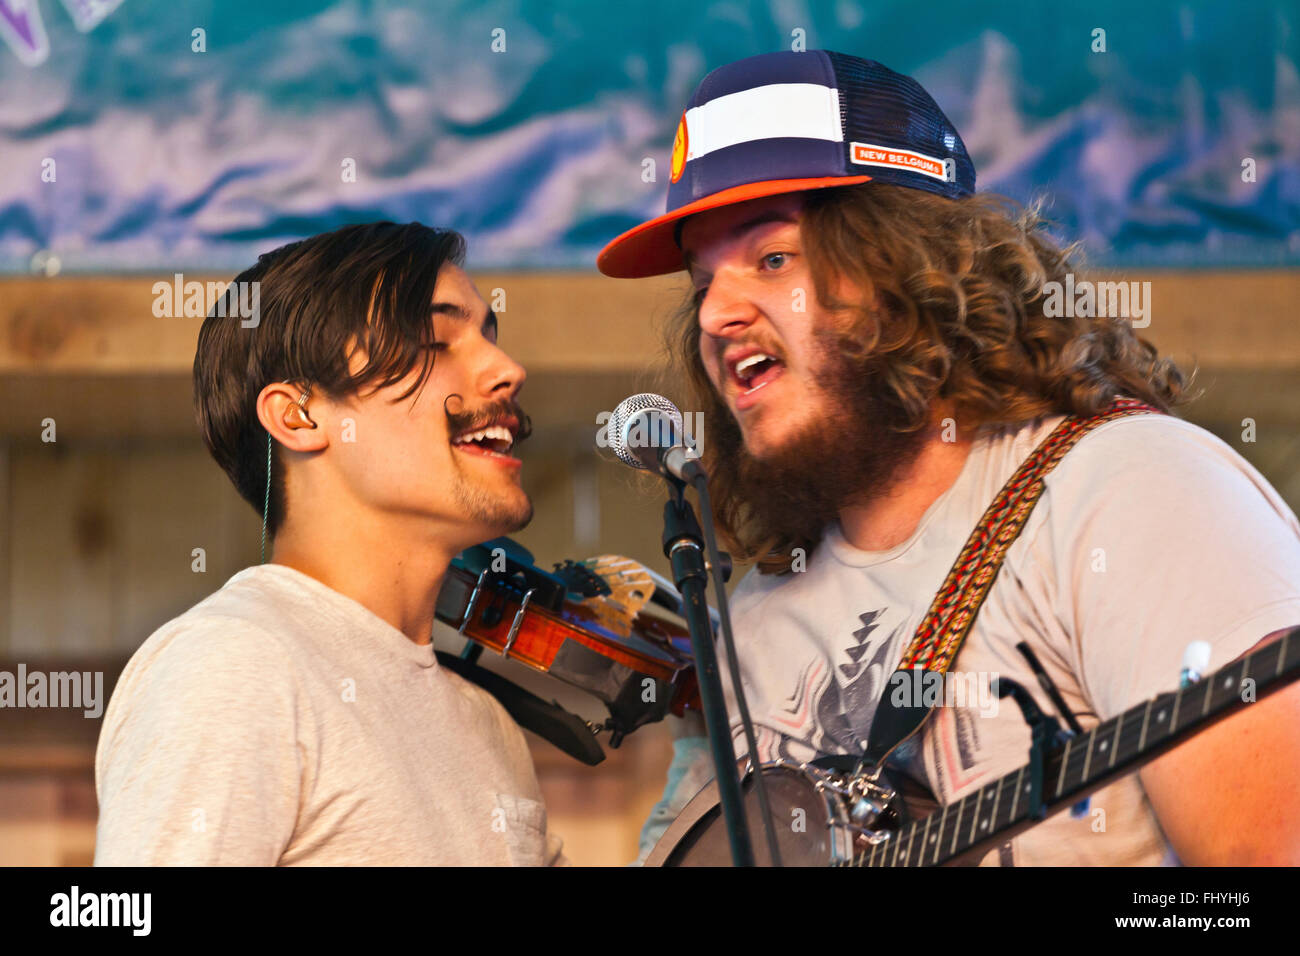 THE OH HELLOS perform at the 2014 FOUR CORNERS FOLK FESTIVAL - COLORADO - Stock Image